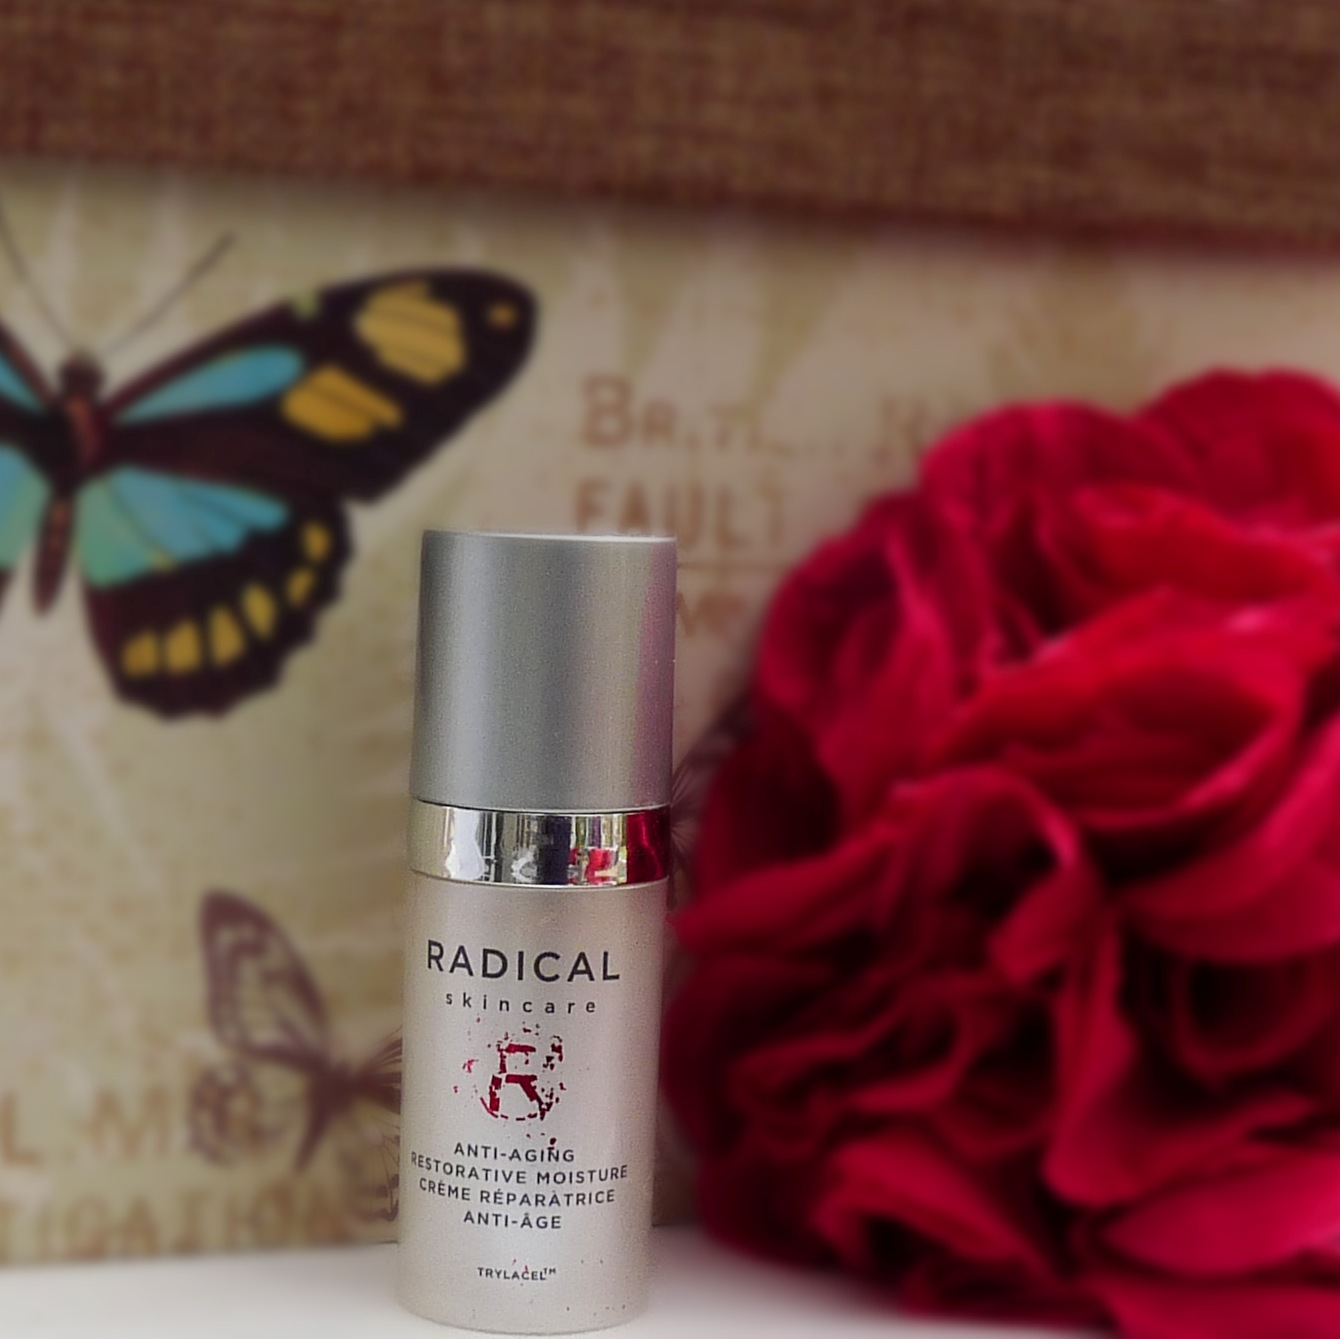 Review Radical Skincare Anti-Ageing Restorative Moisture Crème